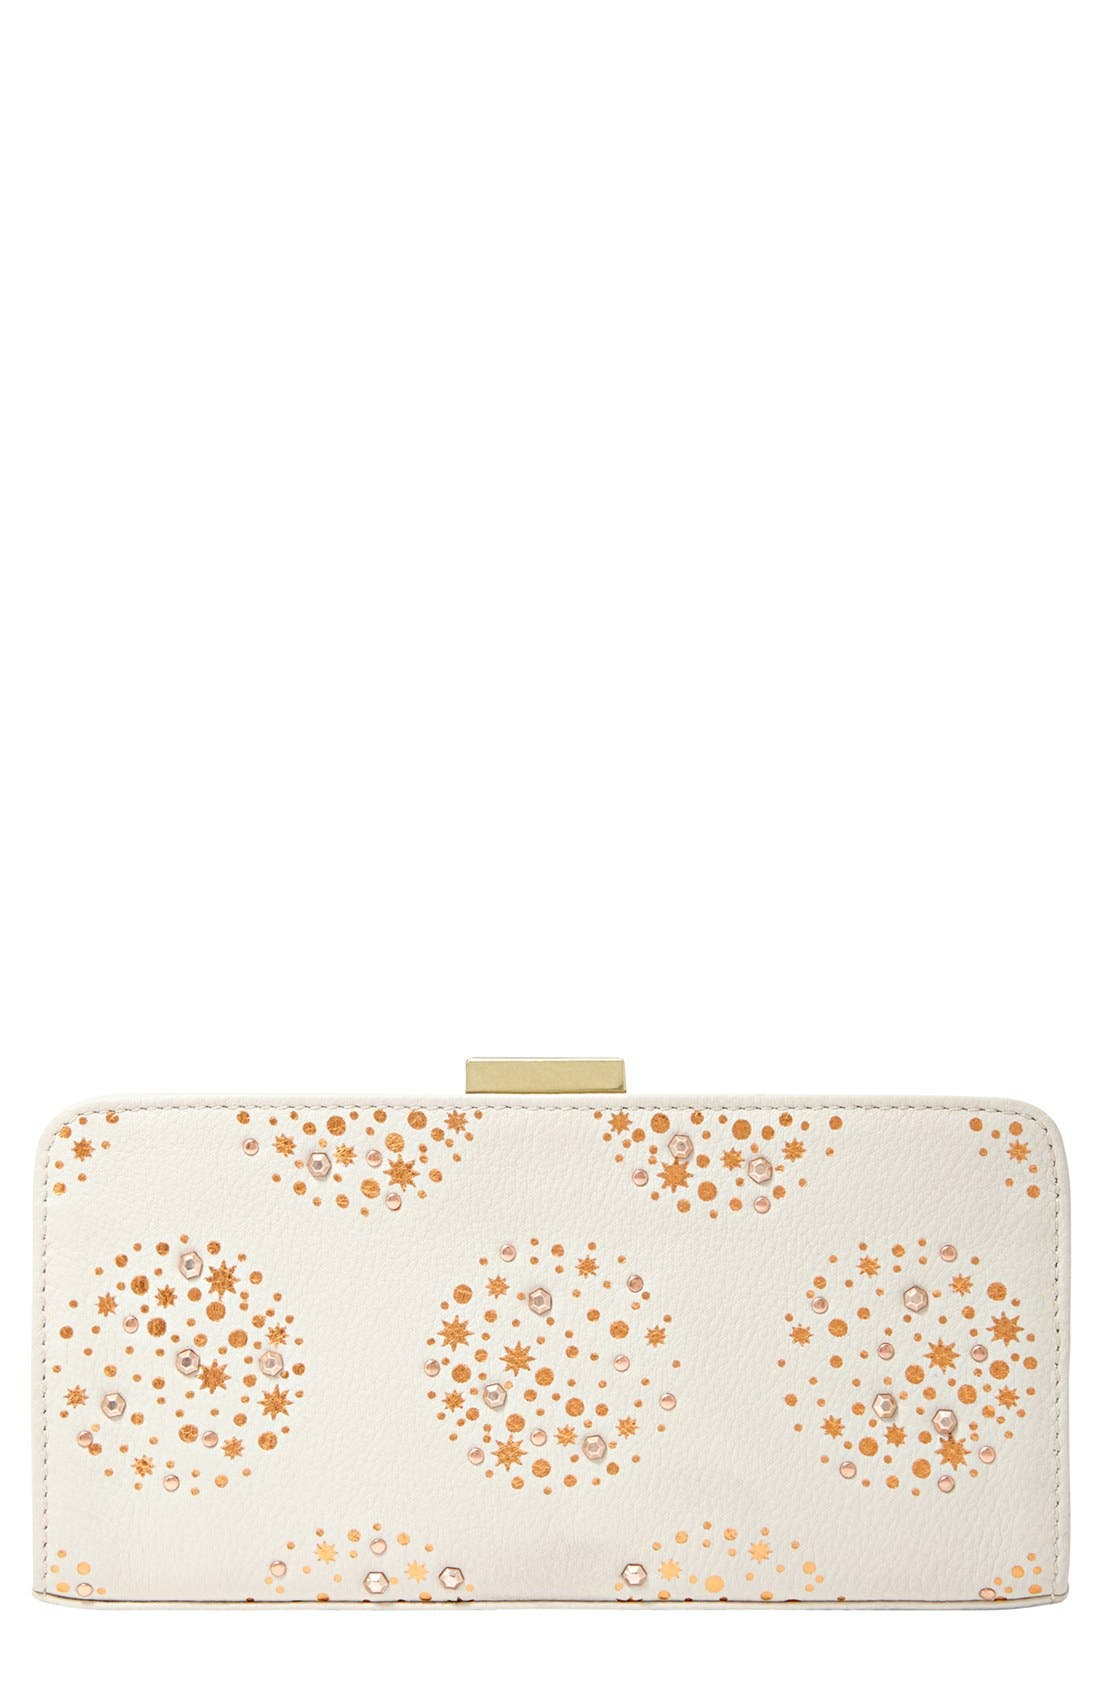 Alternate Image 1 Selected - Fossil 'Memoir' Leather Frame Clutch